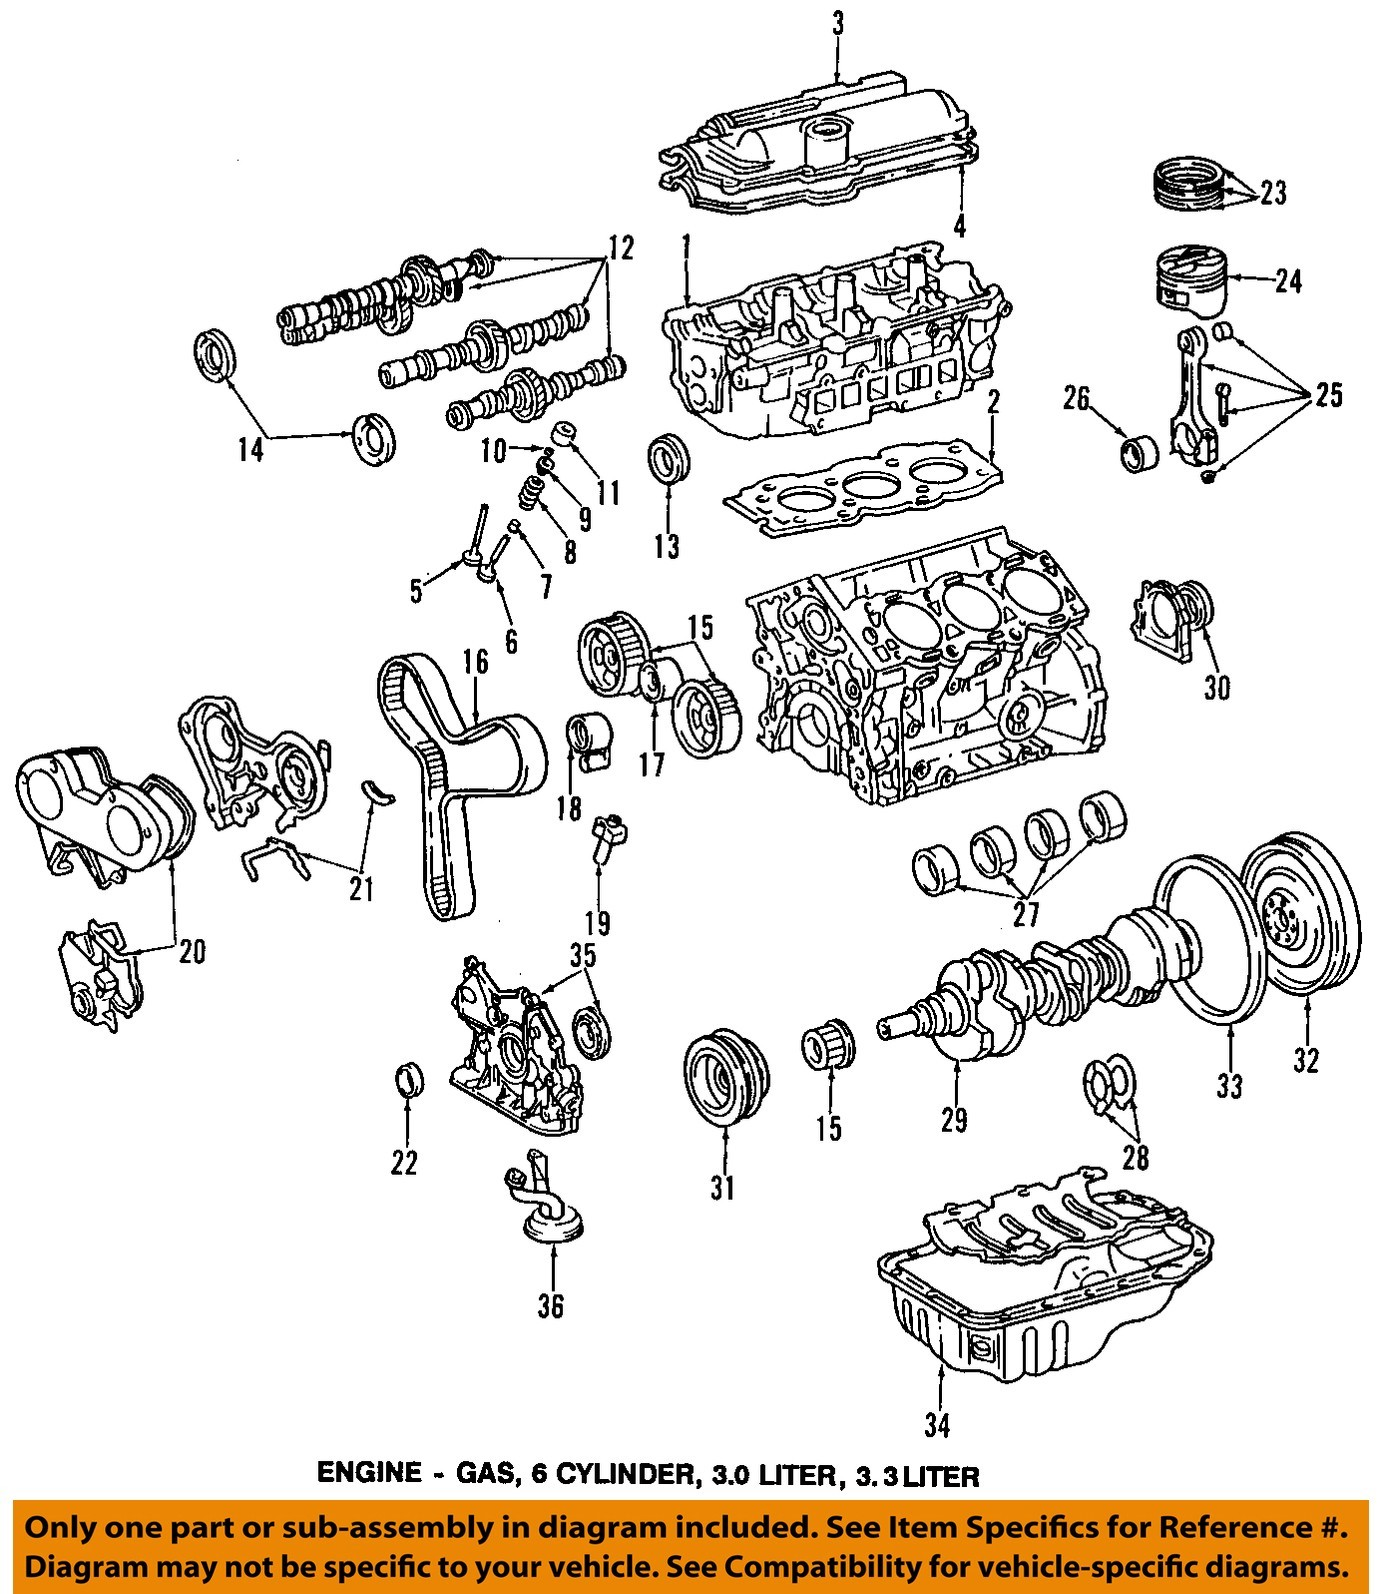 hight resolution of toyota v6 engine parts diagram 17 11 kenmo lp de u2022toyota v6 engine diagram best